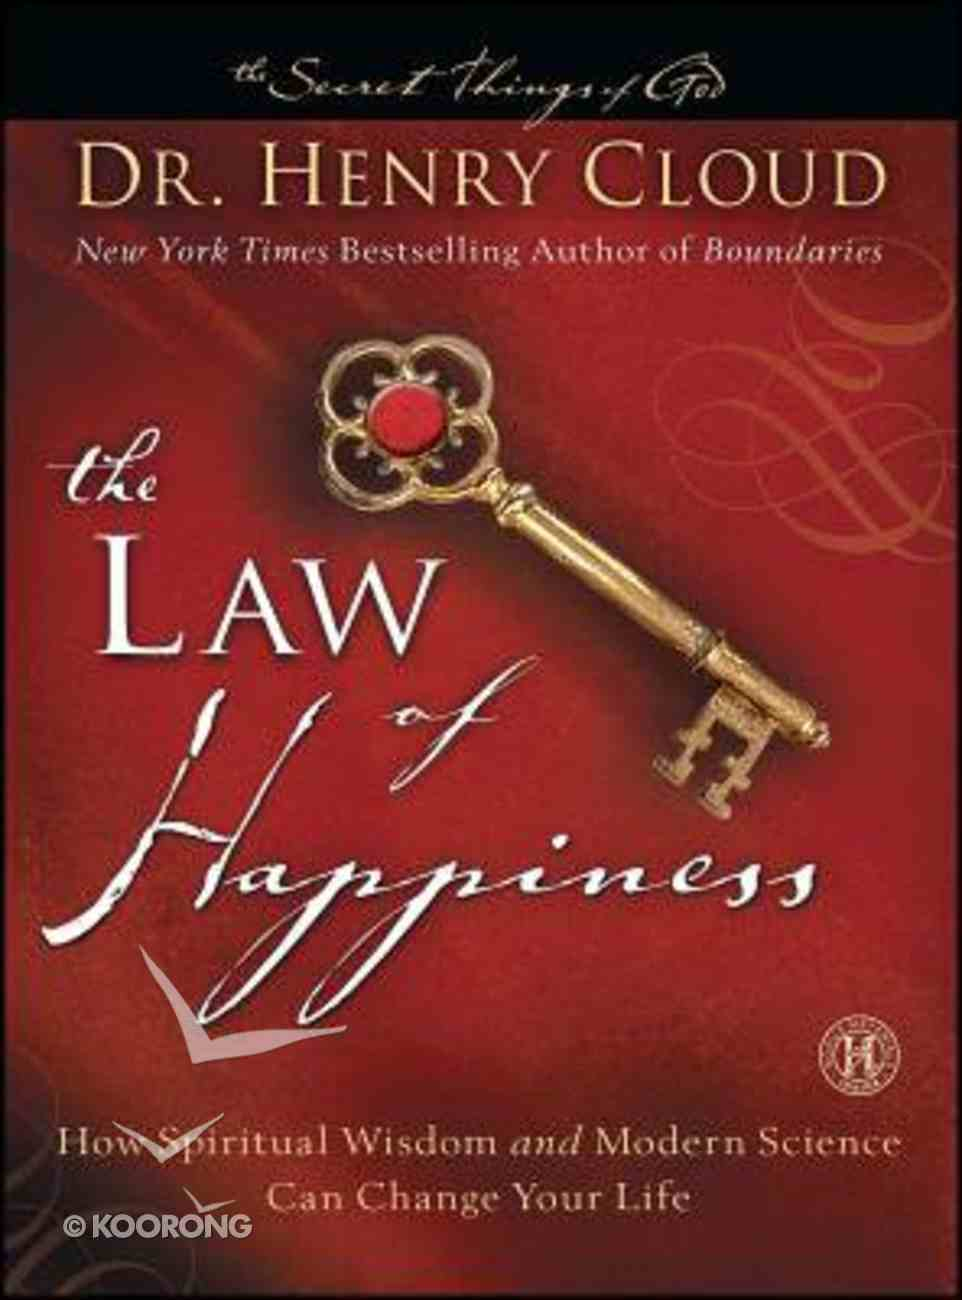 The Law of Happiness Paperback